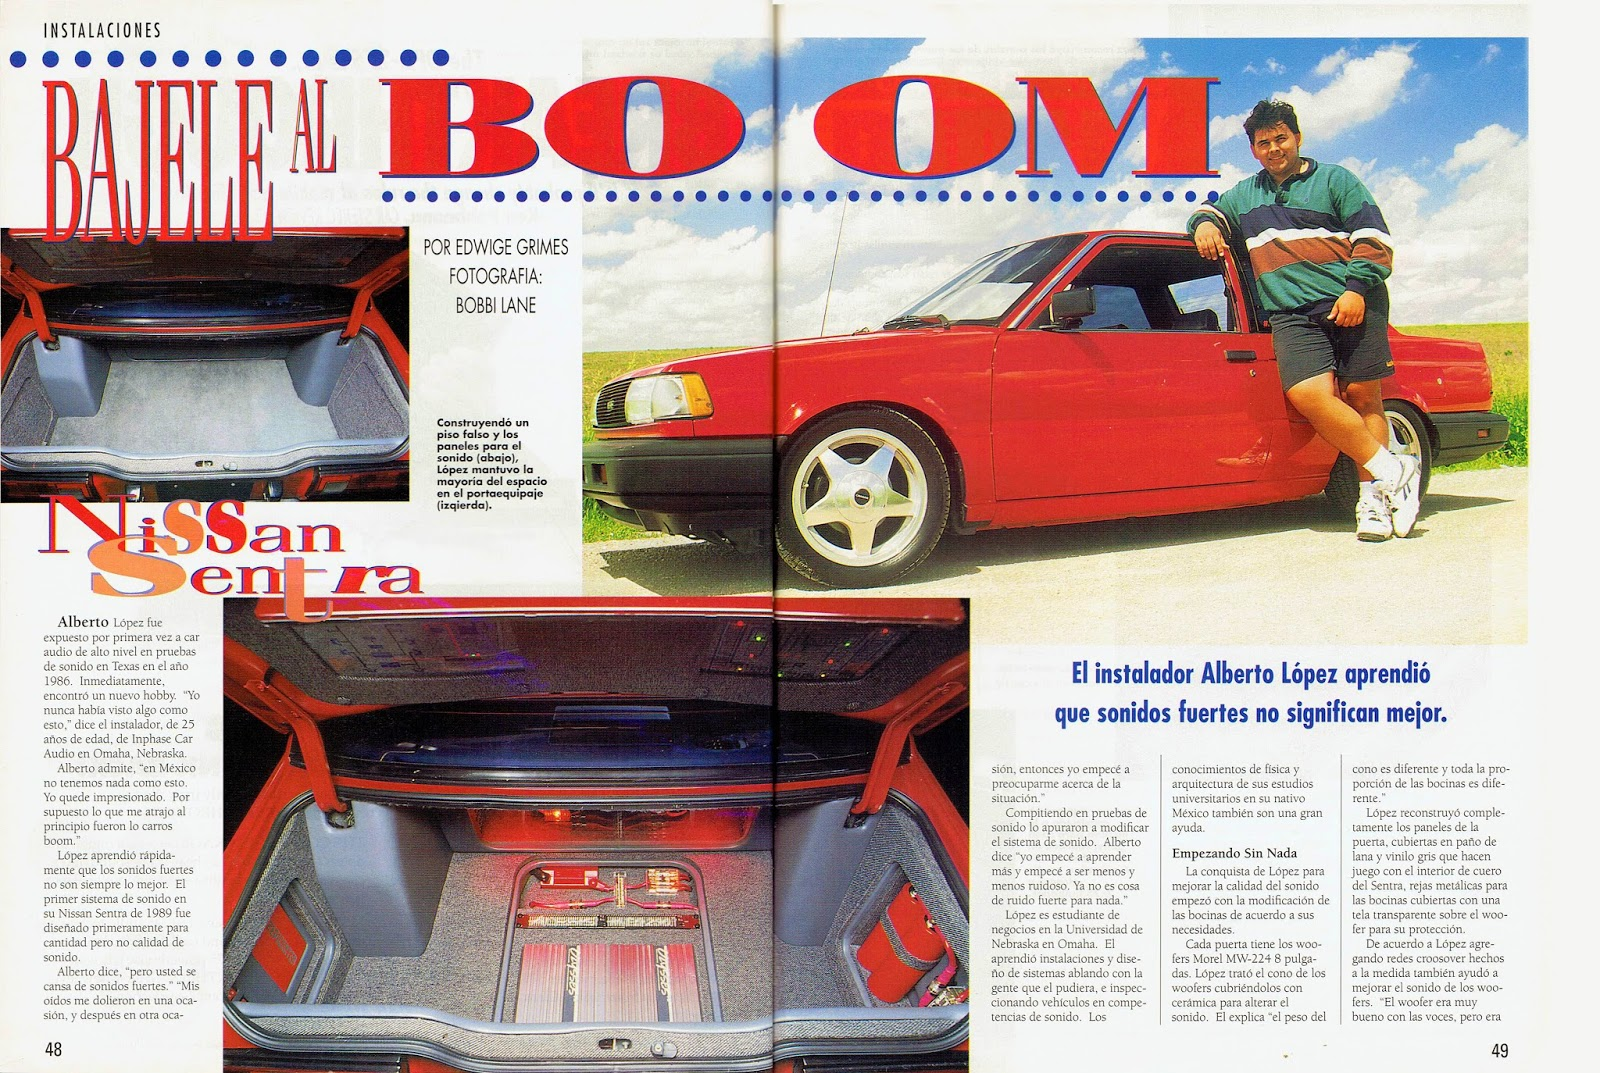 Image of Bajale al Boom Article - pages 48 and 49 - Car Audio & Electronics Magazine Special Edition in Spanish